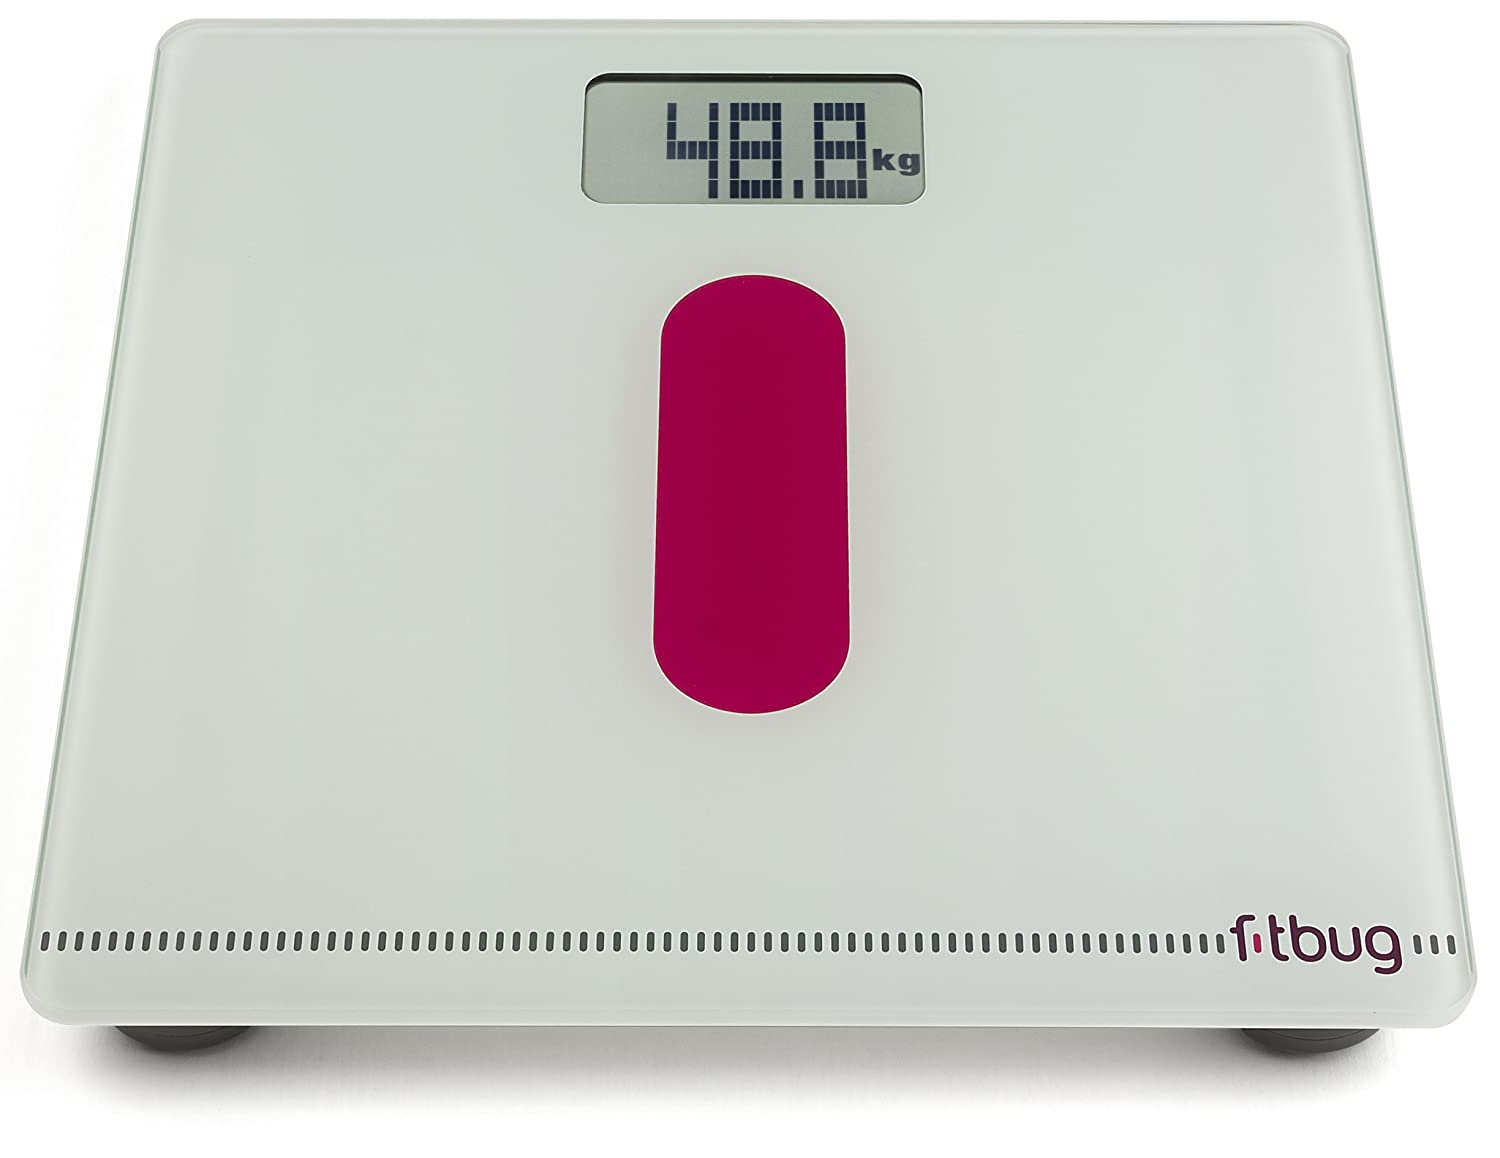 Fitbug FB128WOW Bluetooth Electronic Bathroom Scales